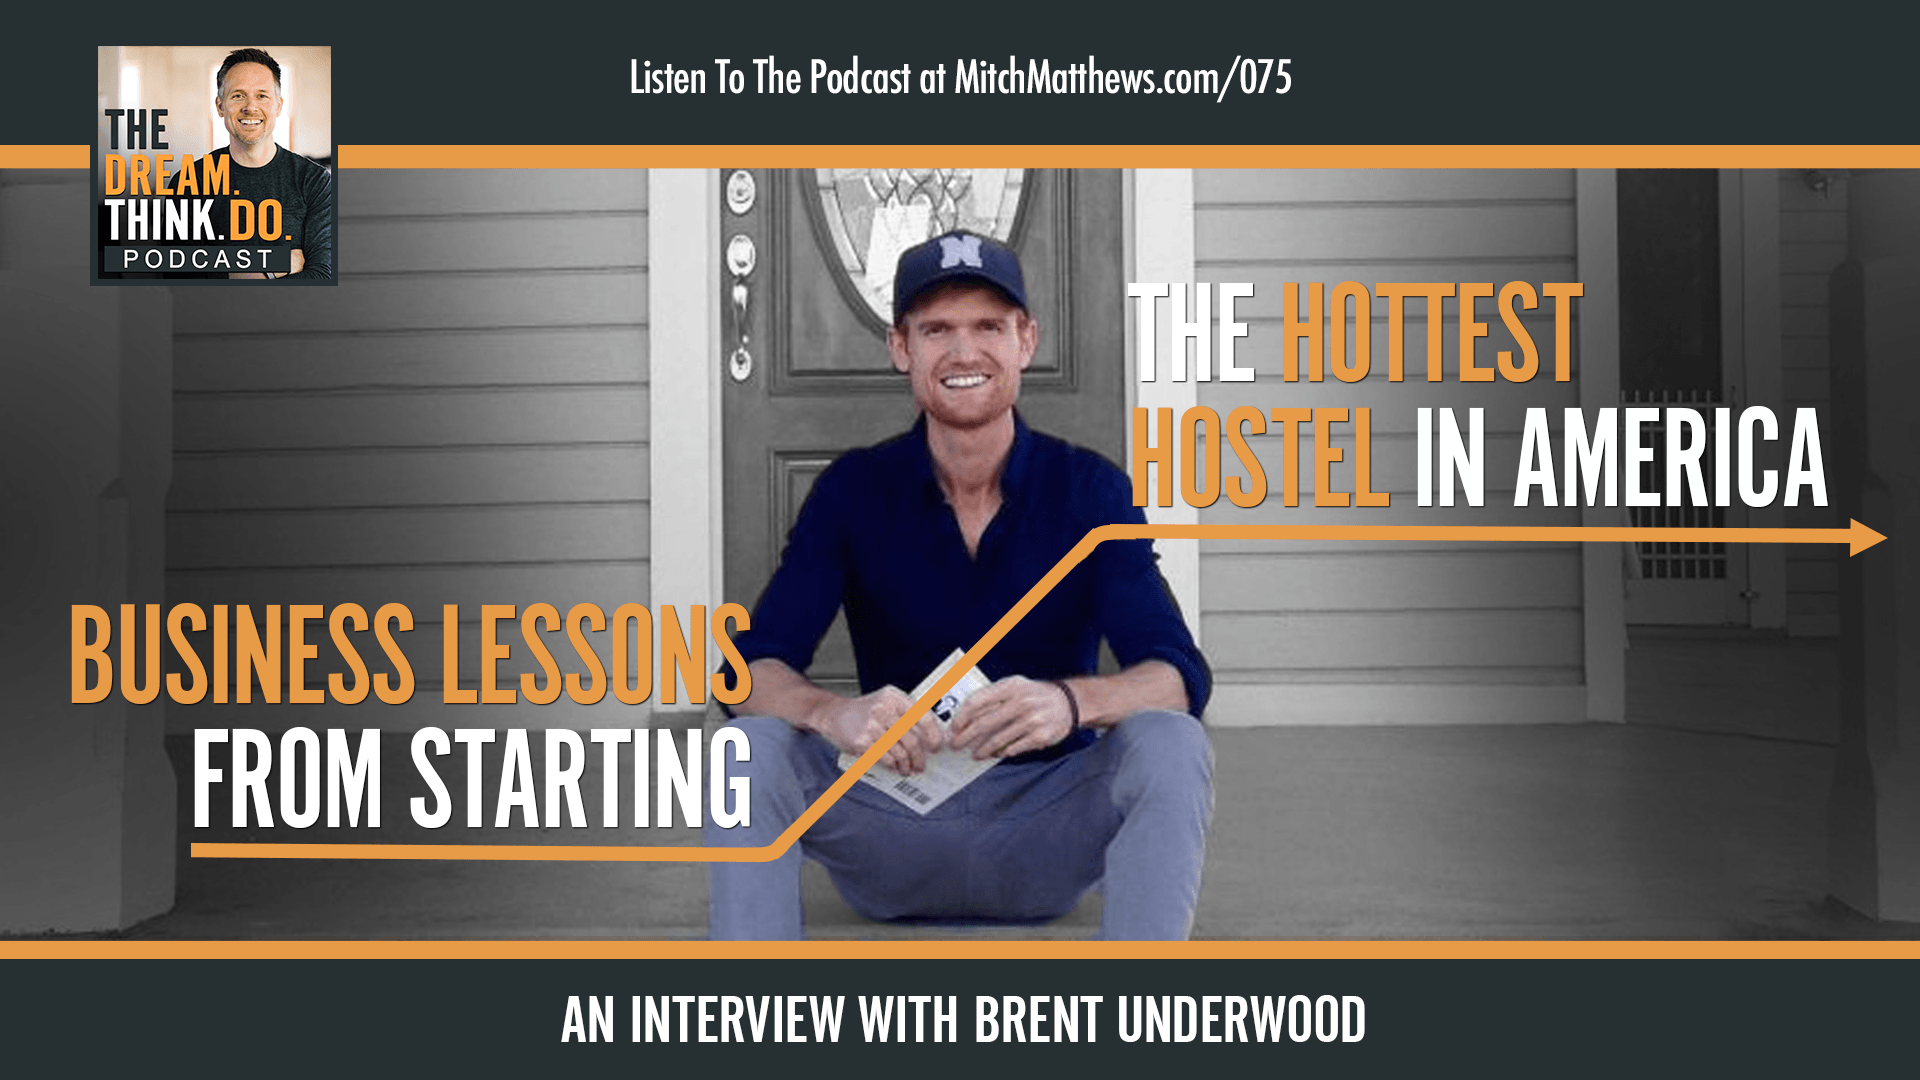 Brent Underwood | Business lessons from starting the hottest hostel in America